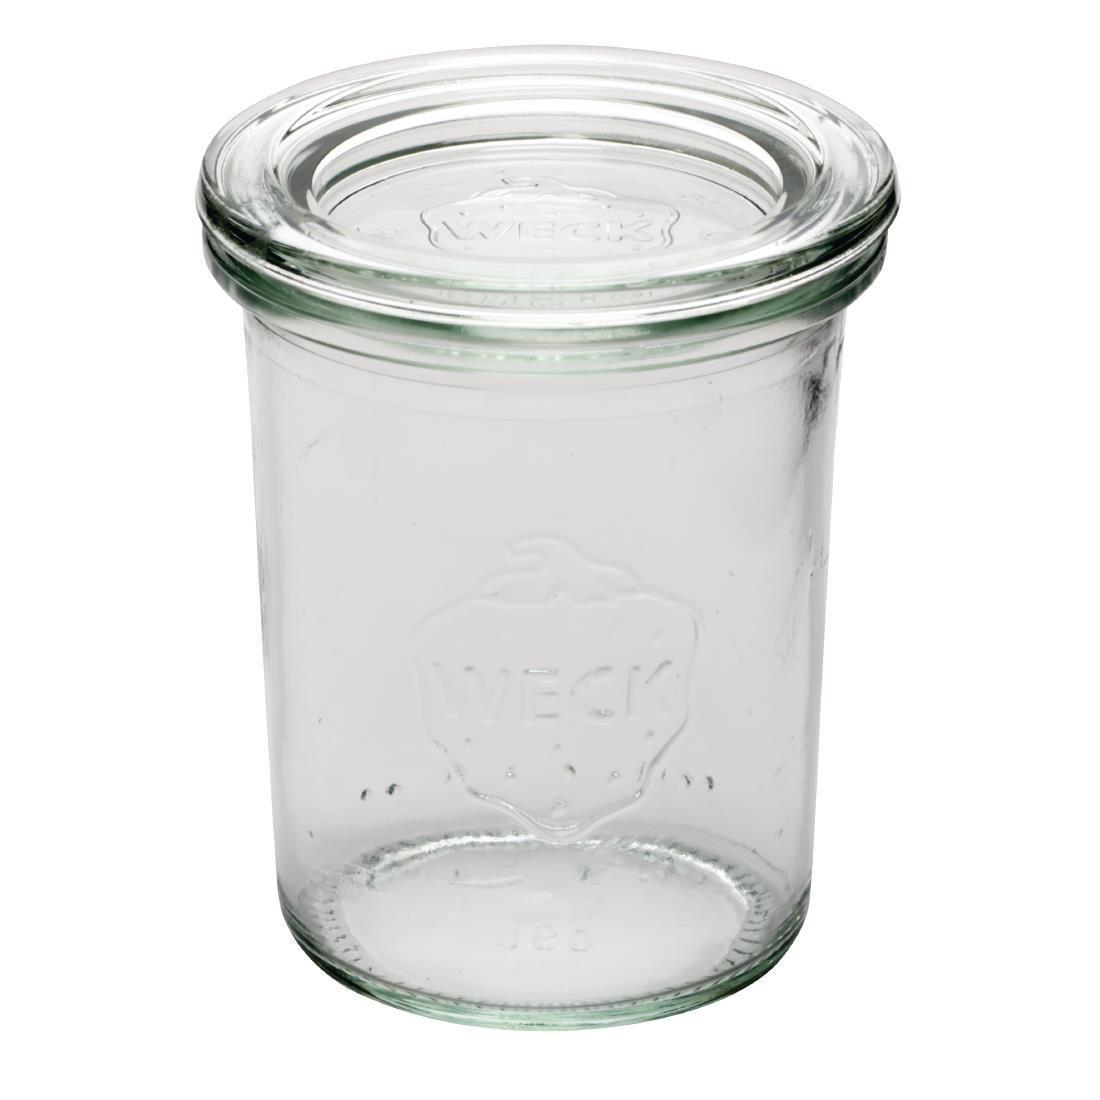 APS 160ml Weck Jar (Pack of 12) - Case 12 - GH388